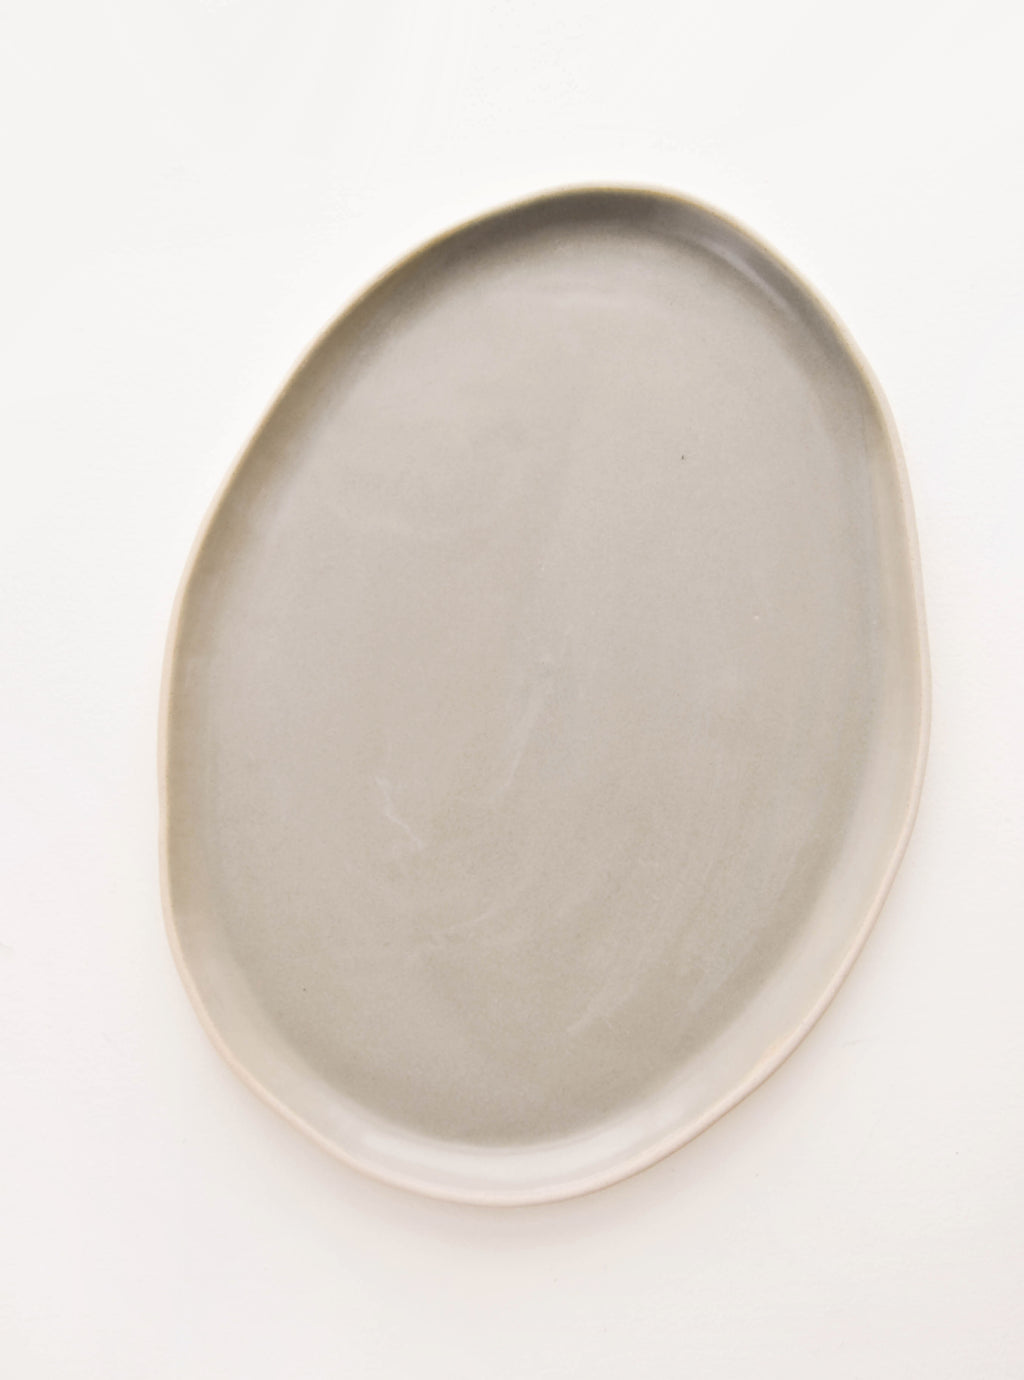 Oyster: La Classe Ceramic Serving Platter in Oyster - LEIF